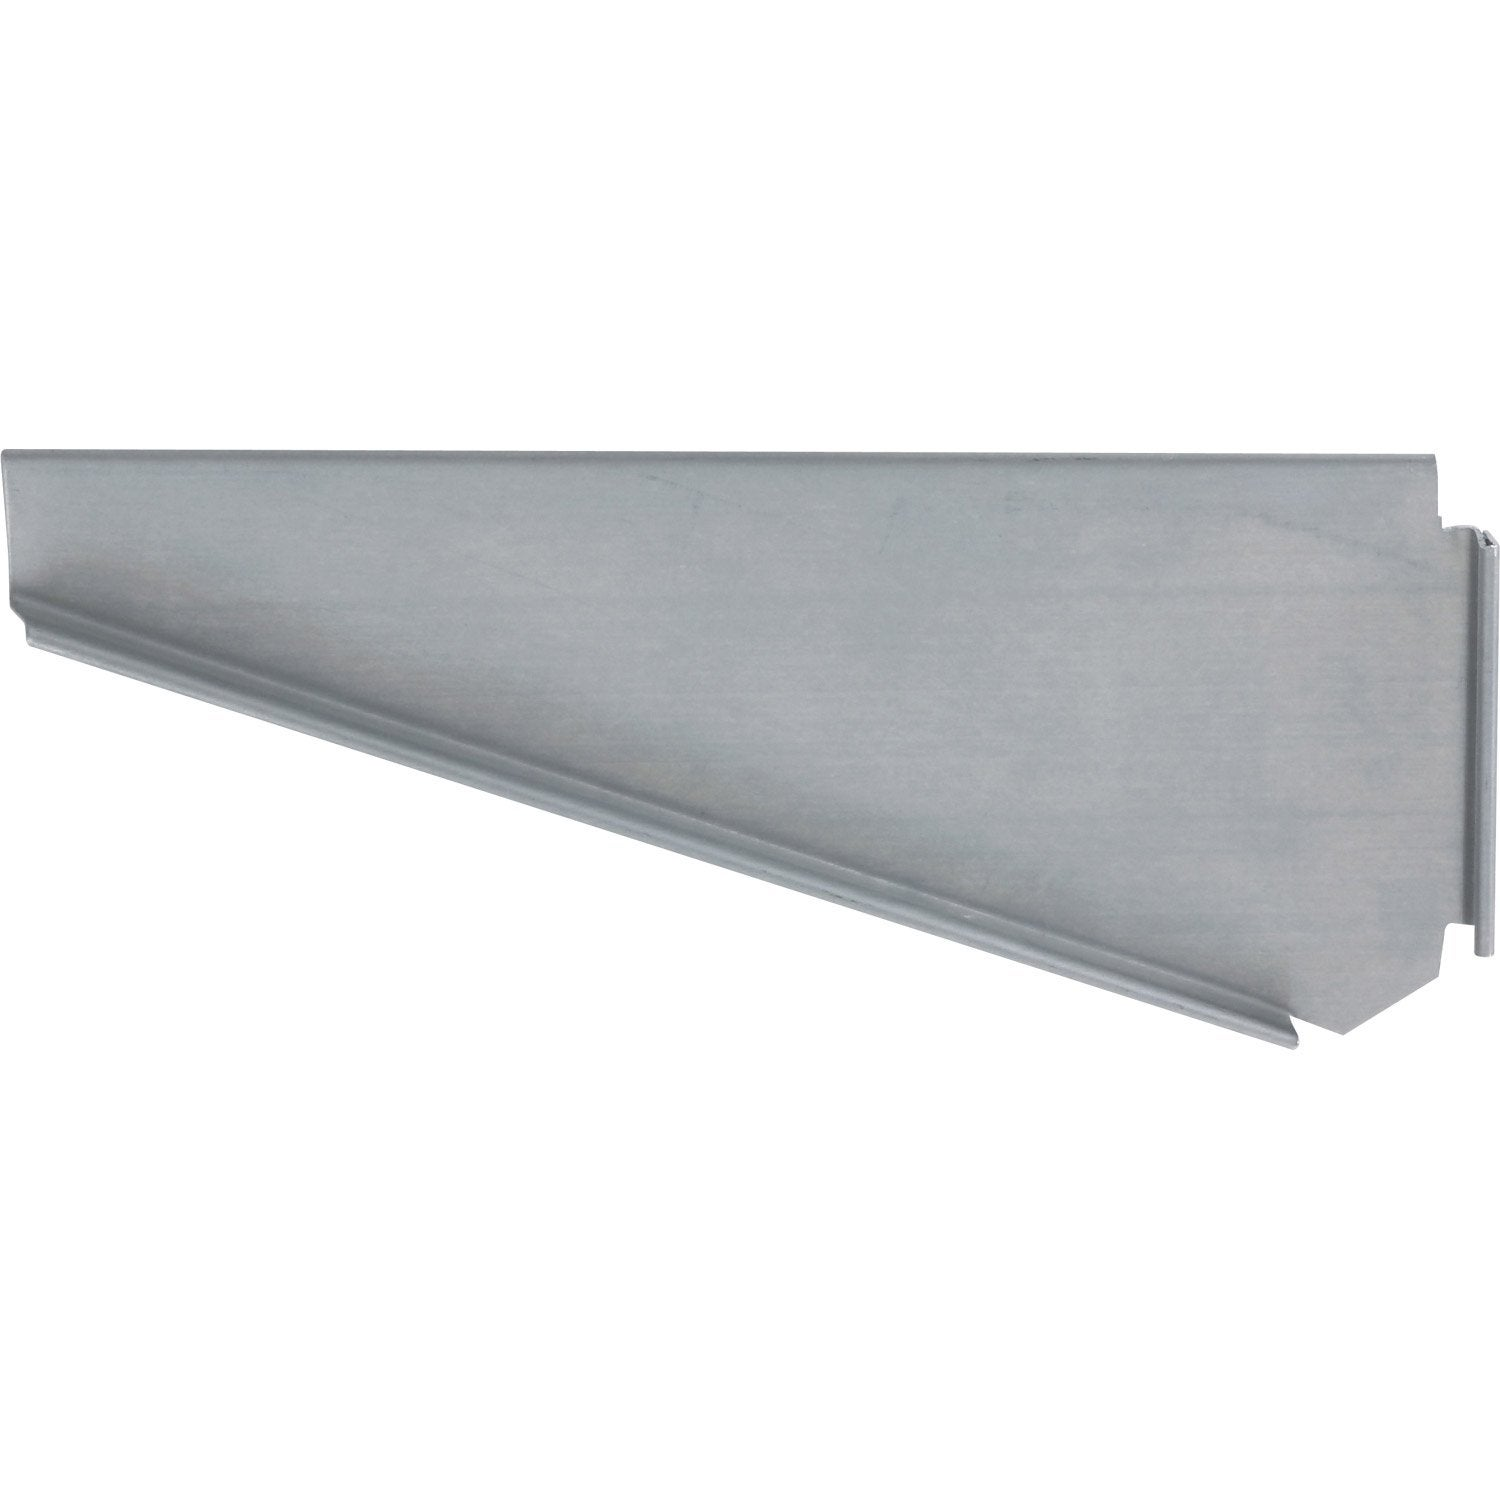 Talon gauche embo table pour goutti re nantaise gris zinc for Table exterieur zinc